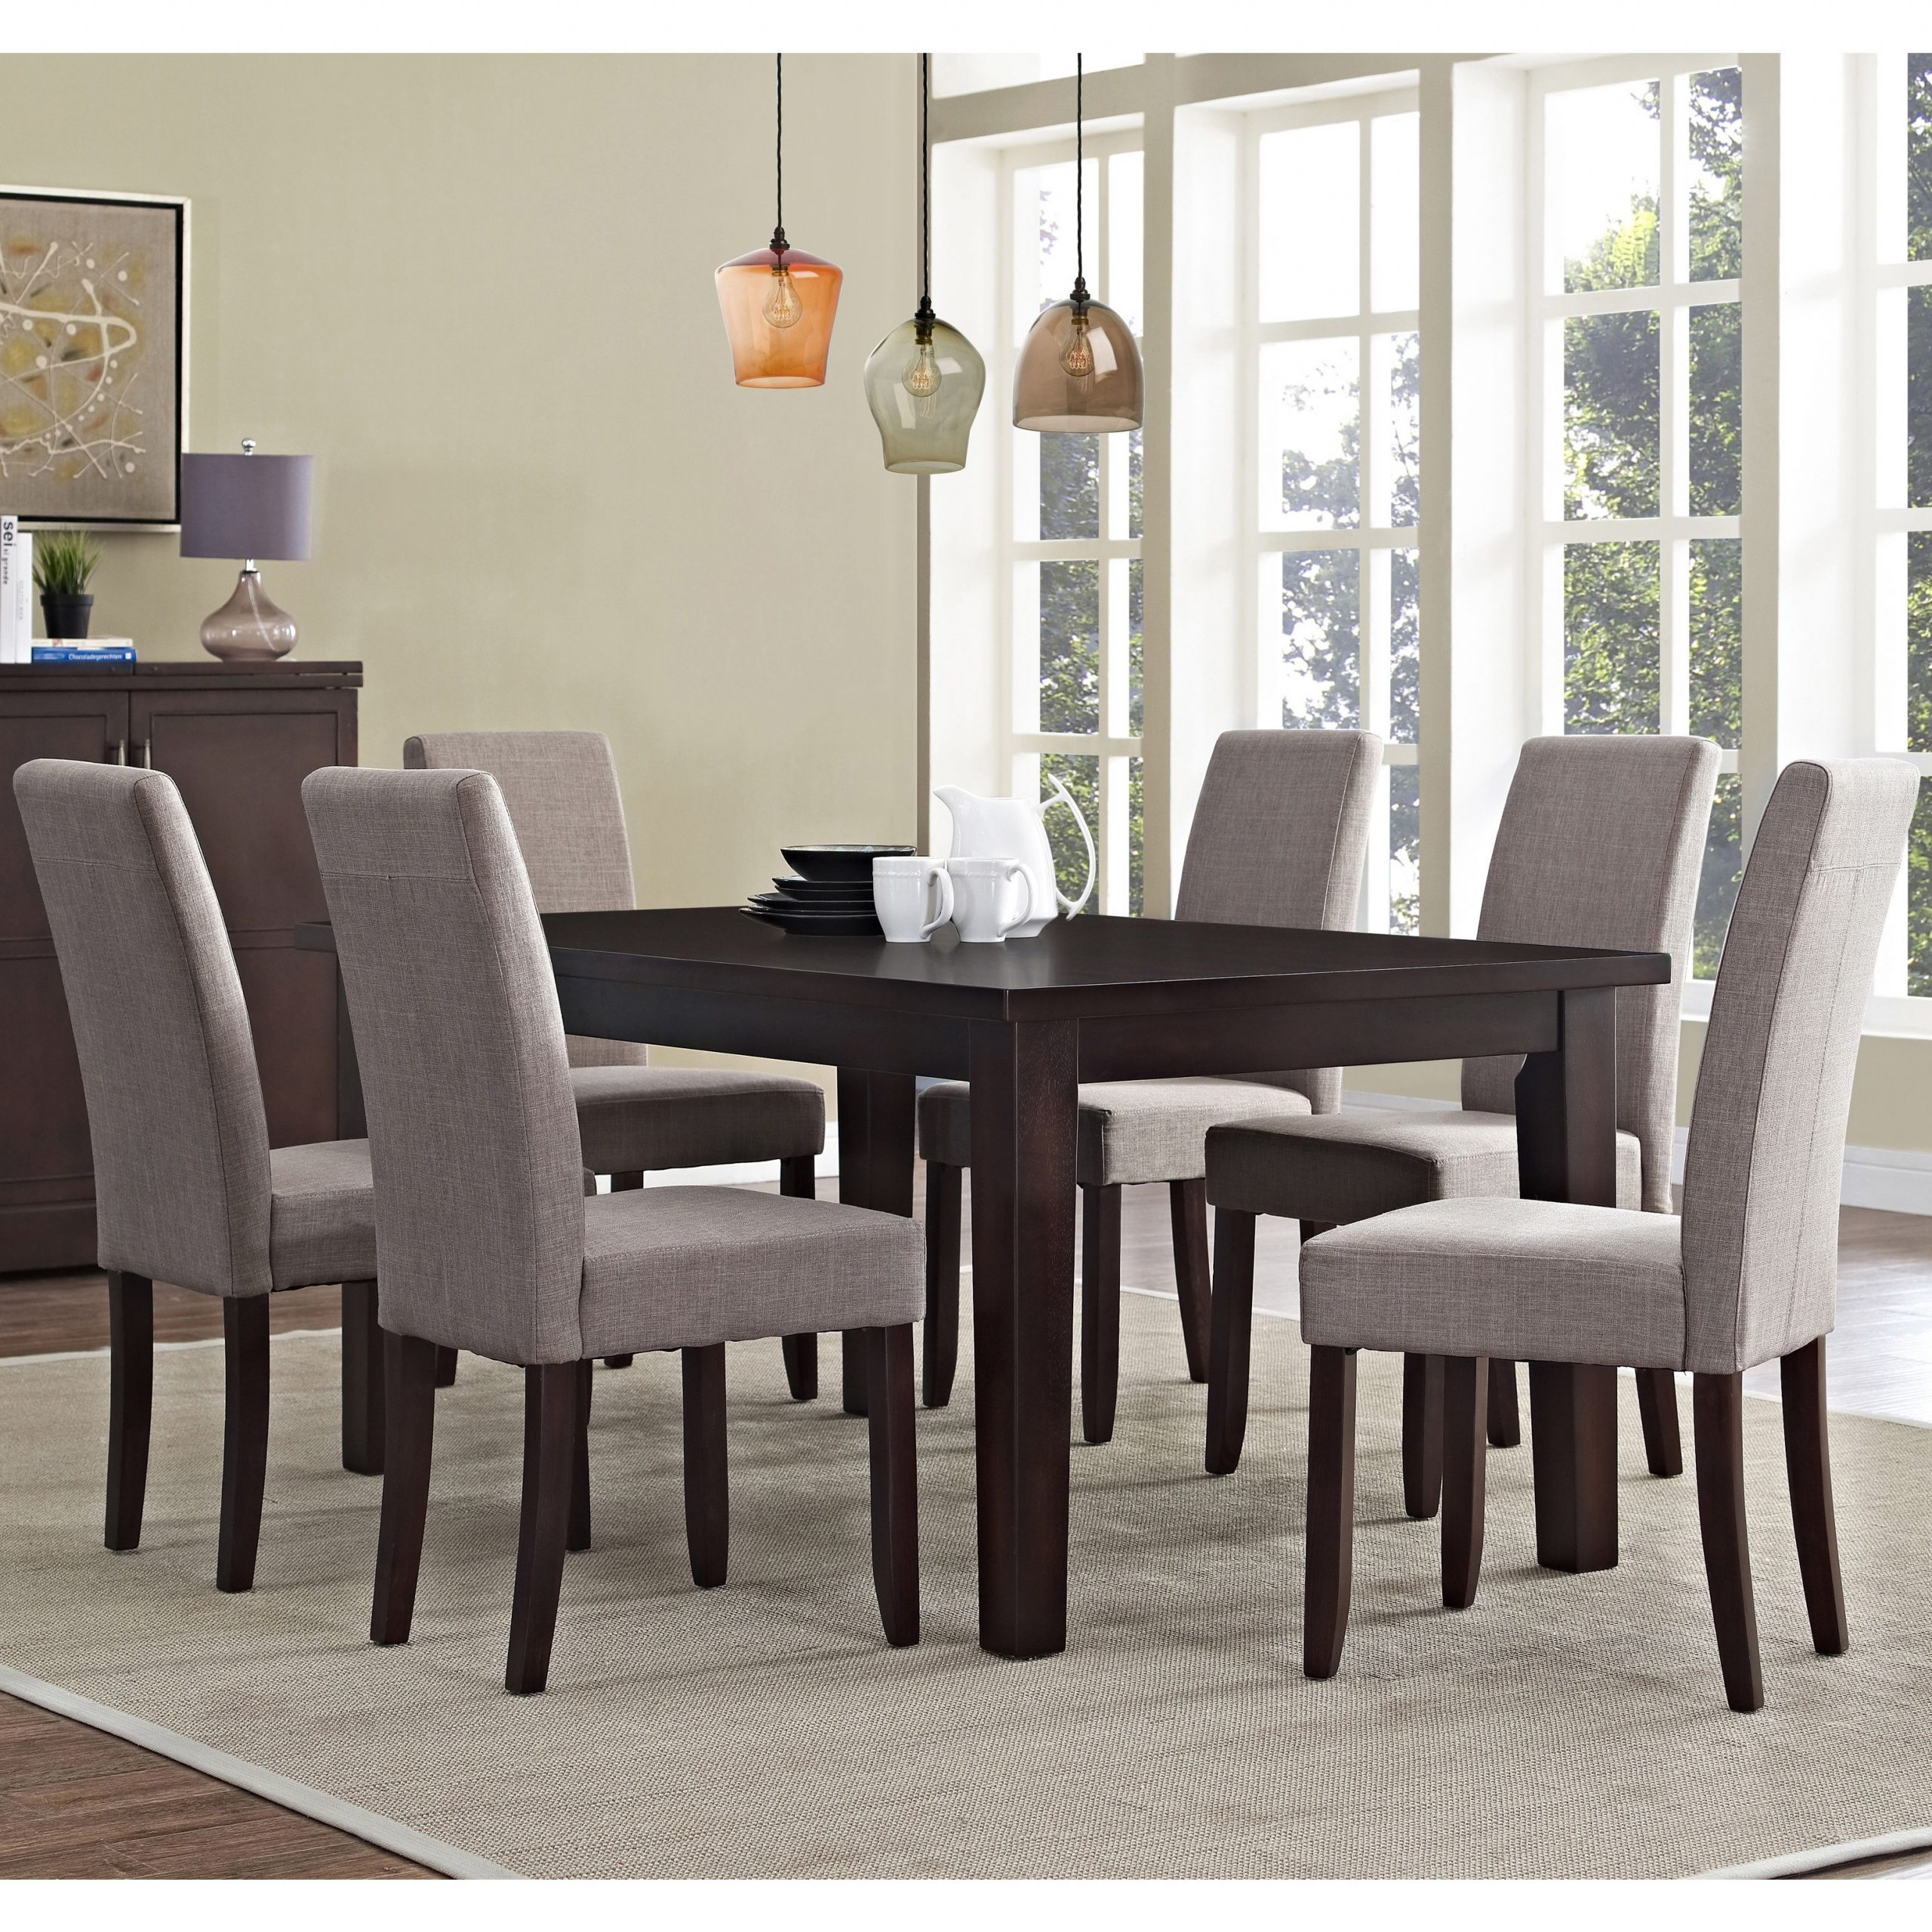 Dine In Sophisticated Style With This 7 Piece Wydenhall With Regard To Newest Normandy Extending Dining Tables (View 11 of 25)